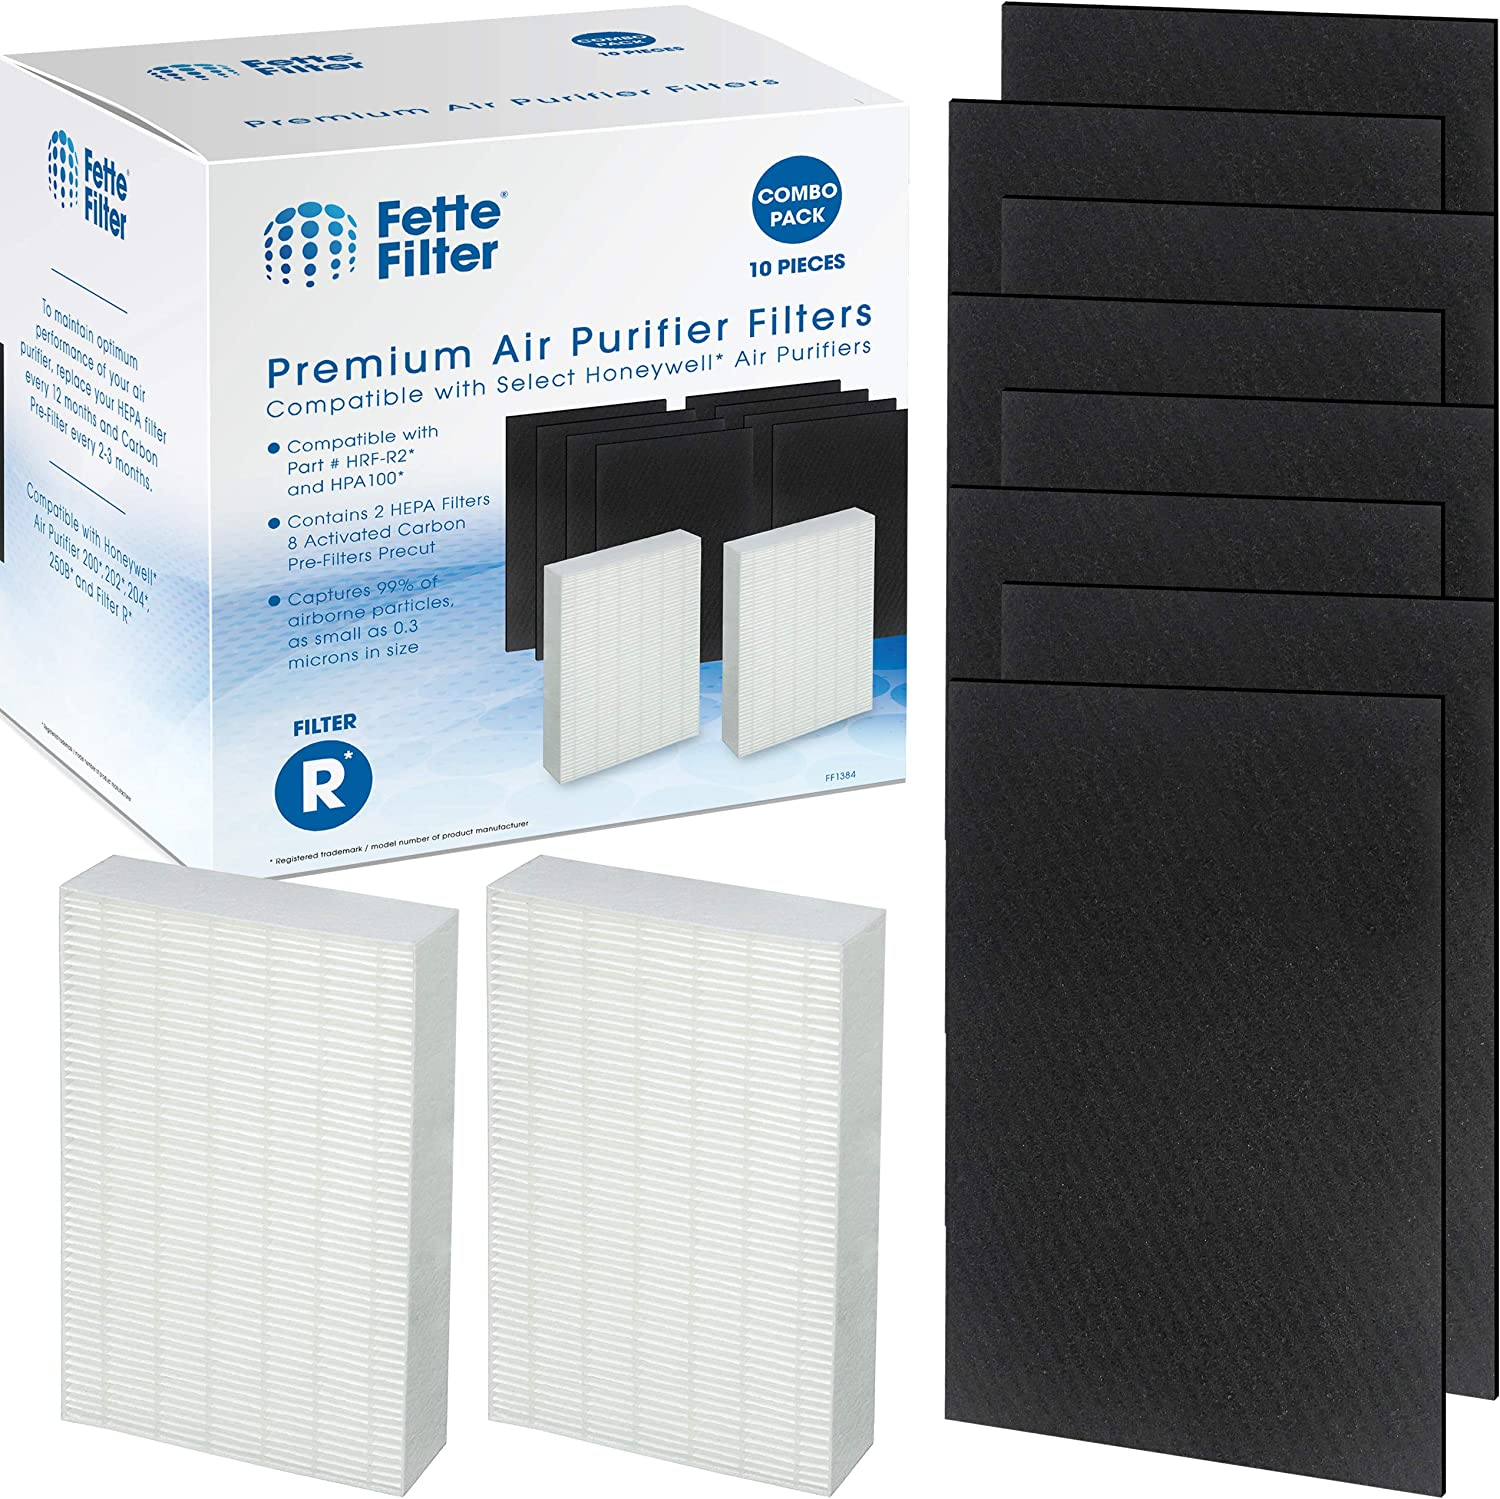 Fette Filter - 2 HEPA Replacement Filter Pack Including 8 Activated Carbon Pre Filters Precut for HPA100 Compatible with Honeywell Air Purifier 090, 094, 100, 104, 105, HA106 & Filter R